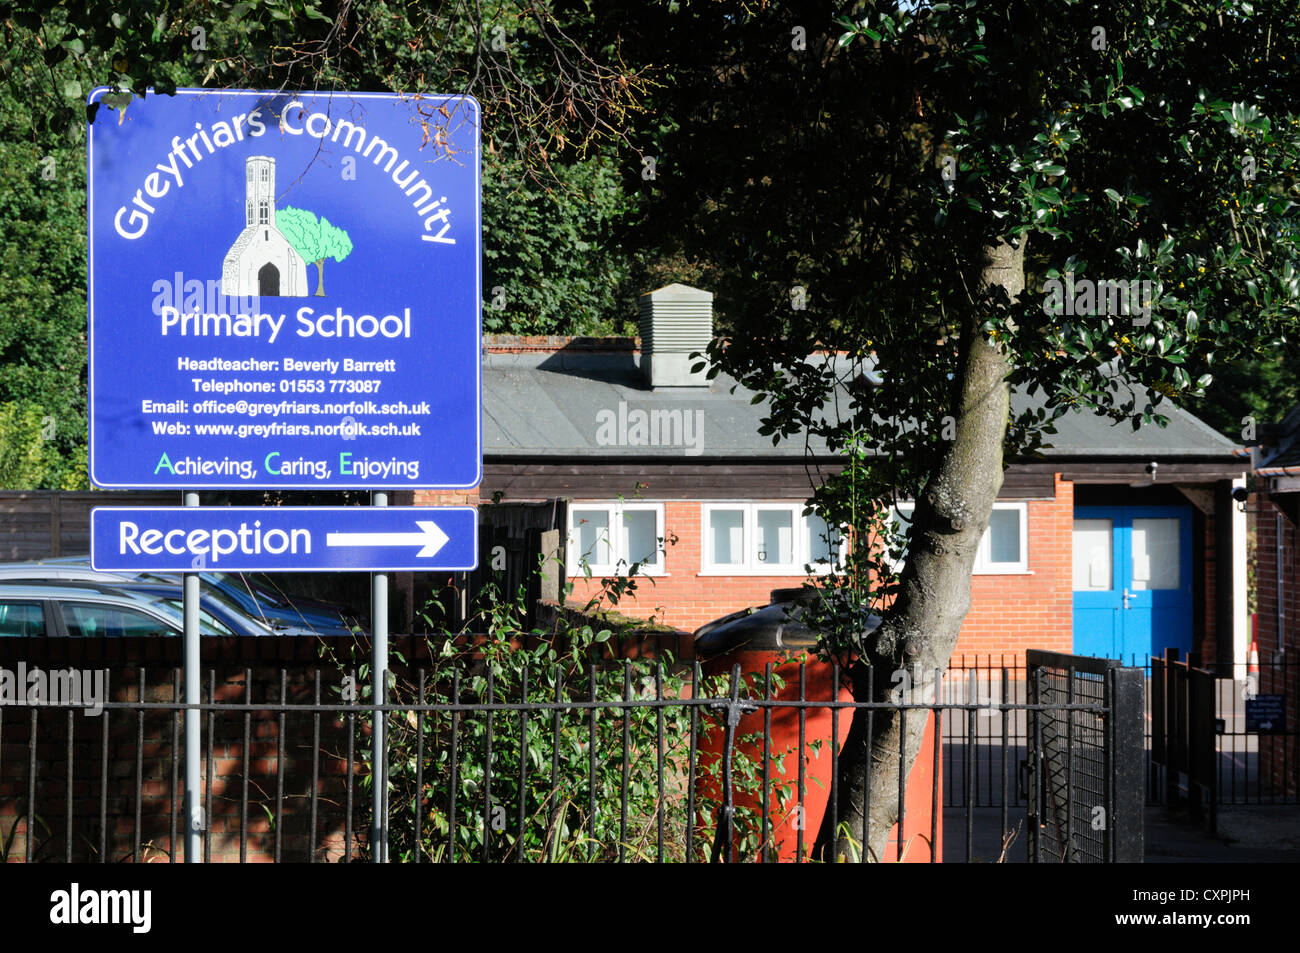 Greyfriars Community Primary School, King's Lynn, Norfolk. - Stock Image